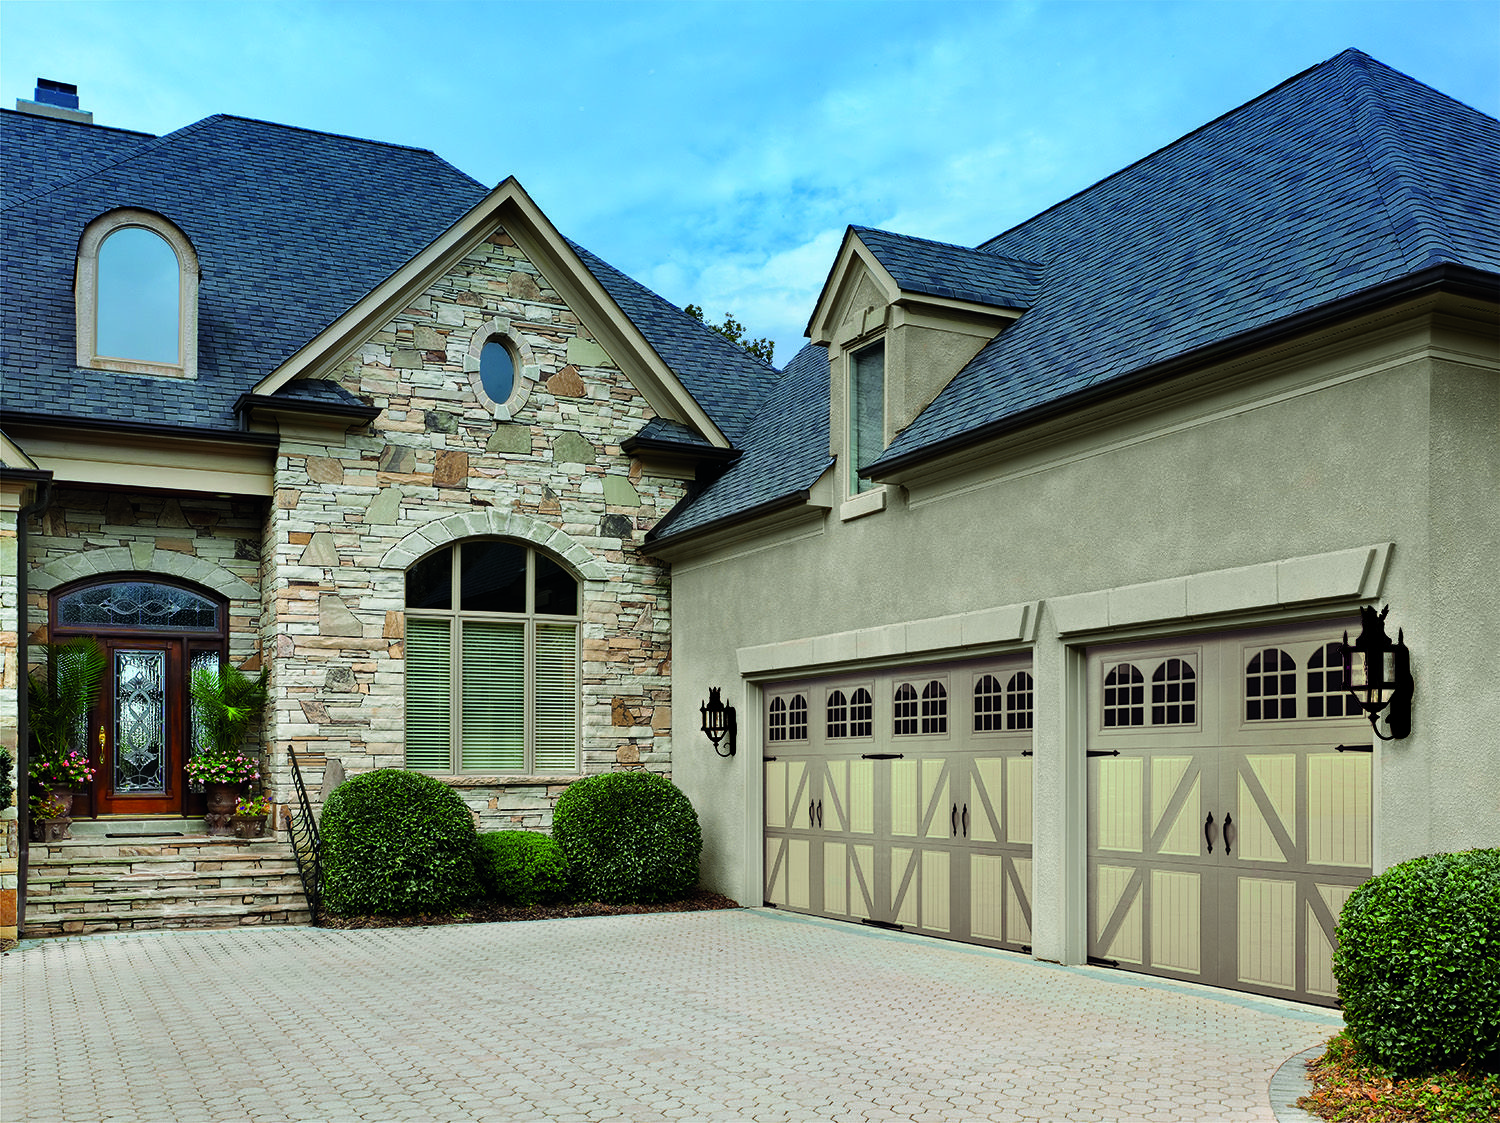 Garage door repairs by s amp t garage doors of northern virginia - Amarr Garage Doors Classica Collection Lucern Design With Rhine Windows And Blue Ridge Handles And